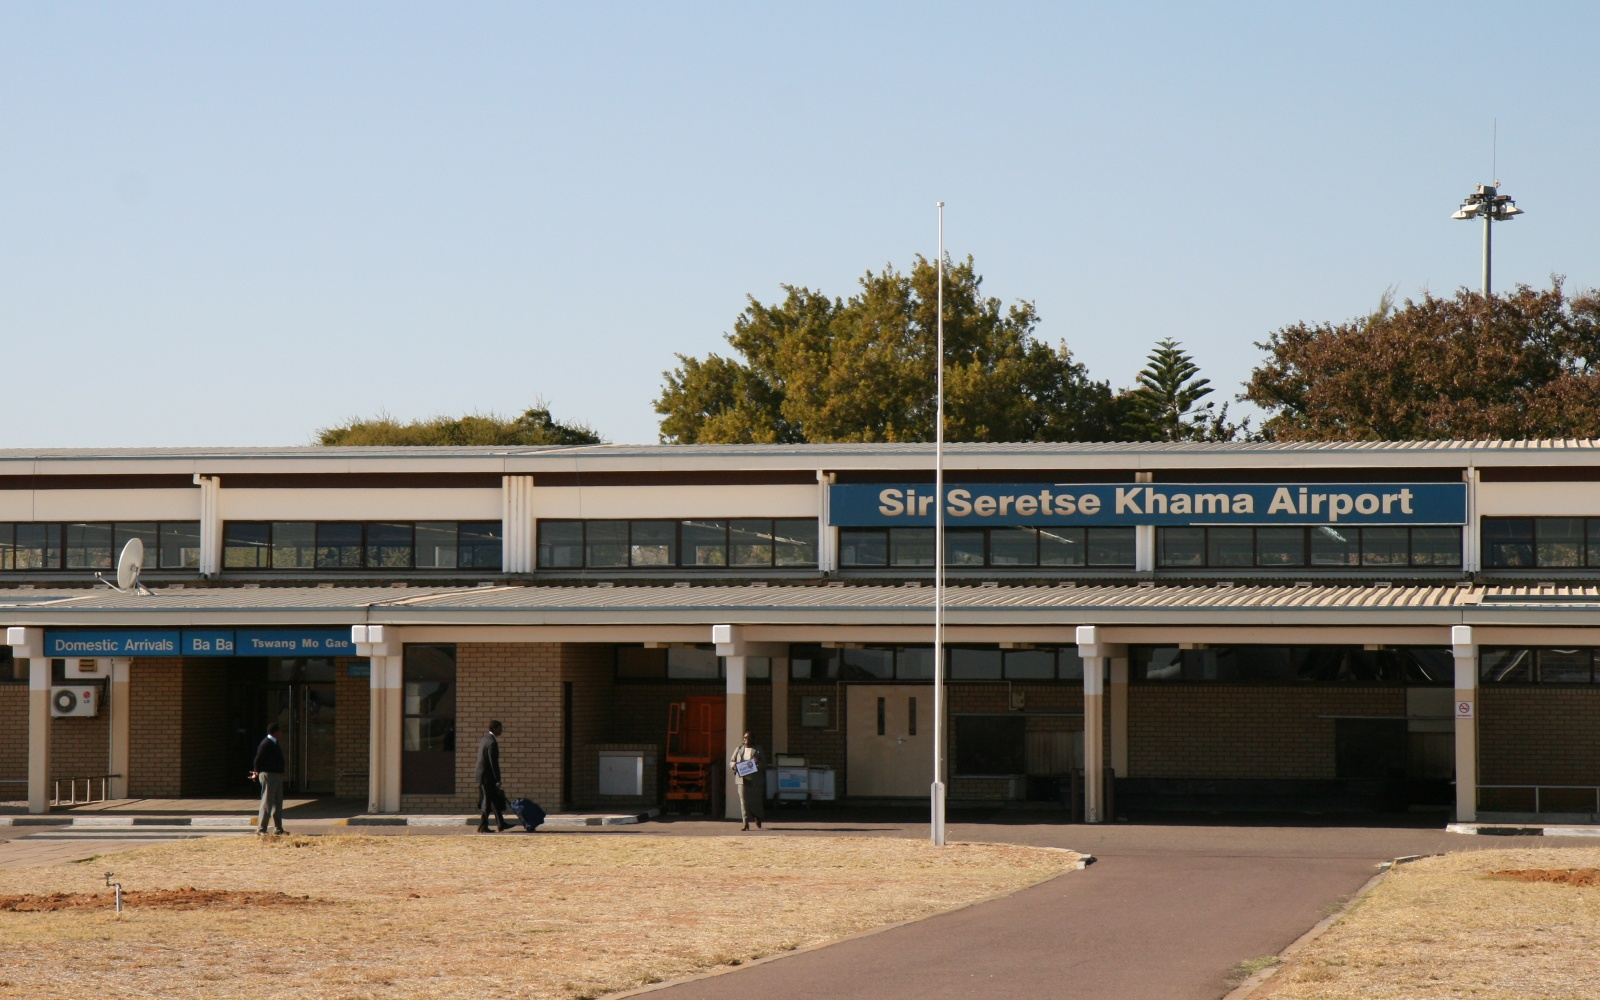 http://upload.wikimedia.org/wikipedia/commons/c/c7/Gaborone_Airport.jpg